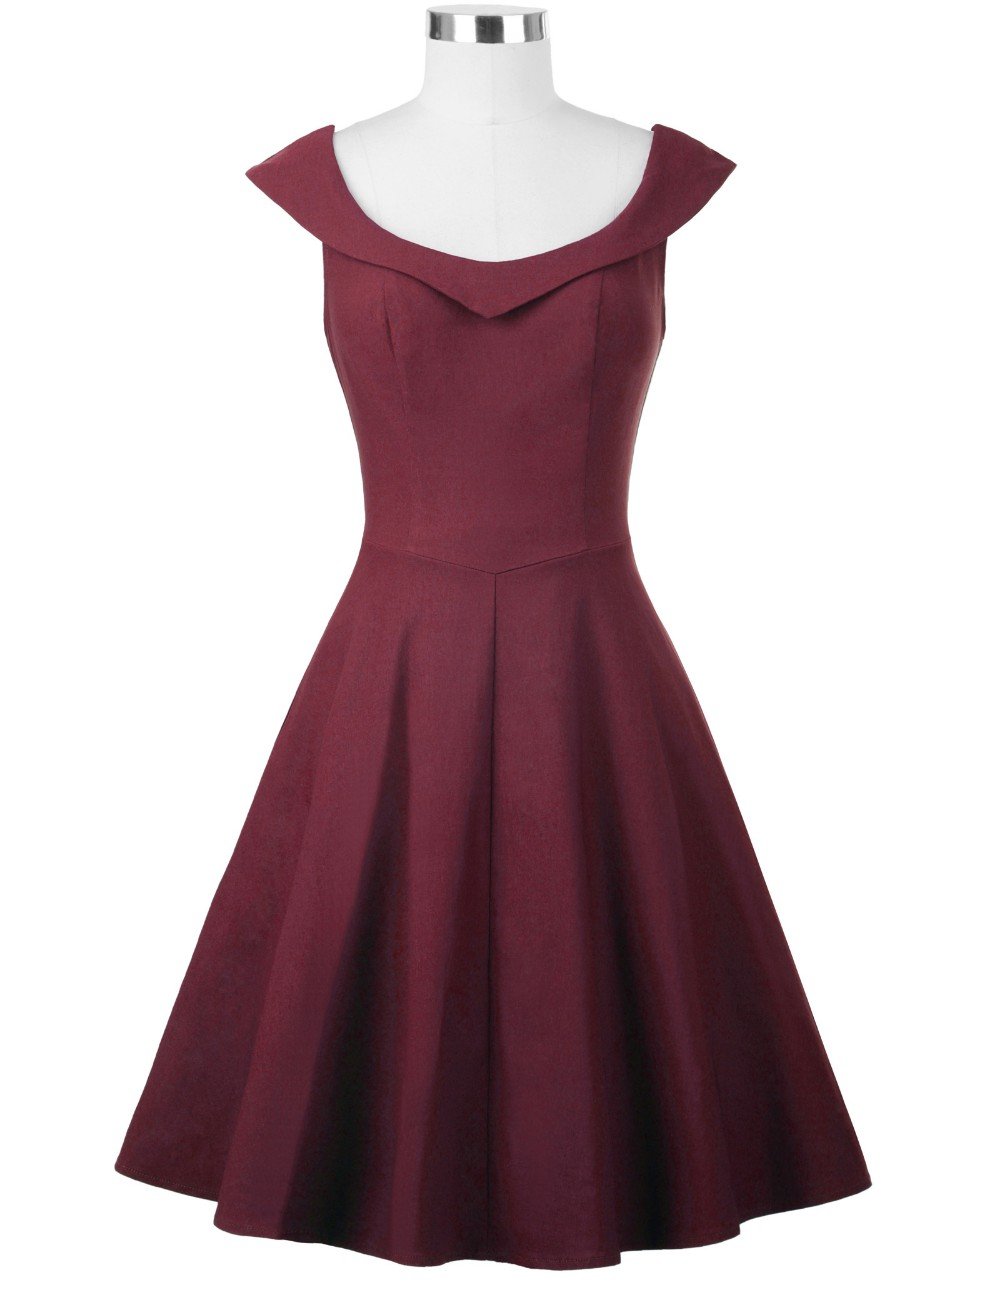 Dolly Burgundy Vintage Dress 1950sglam